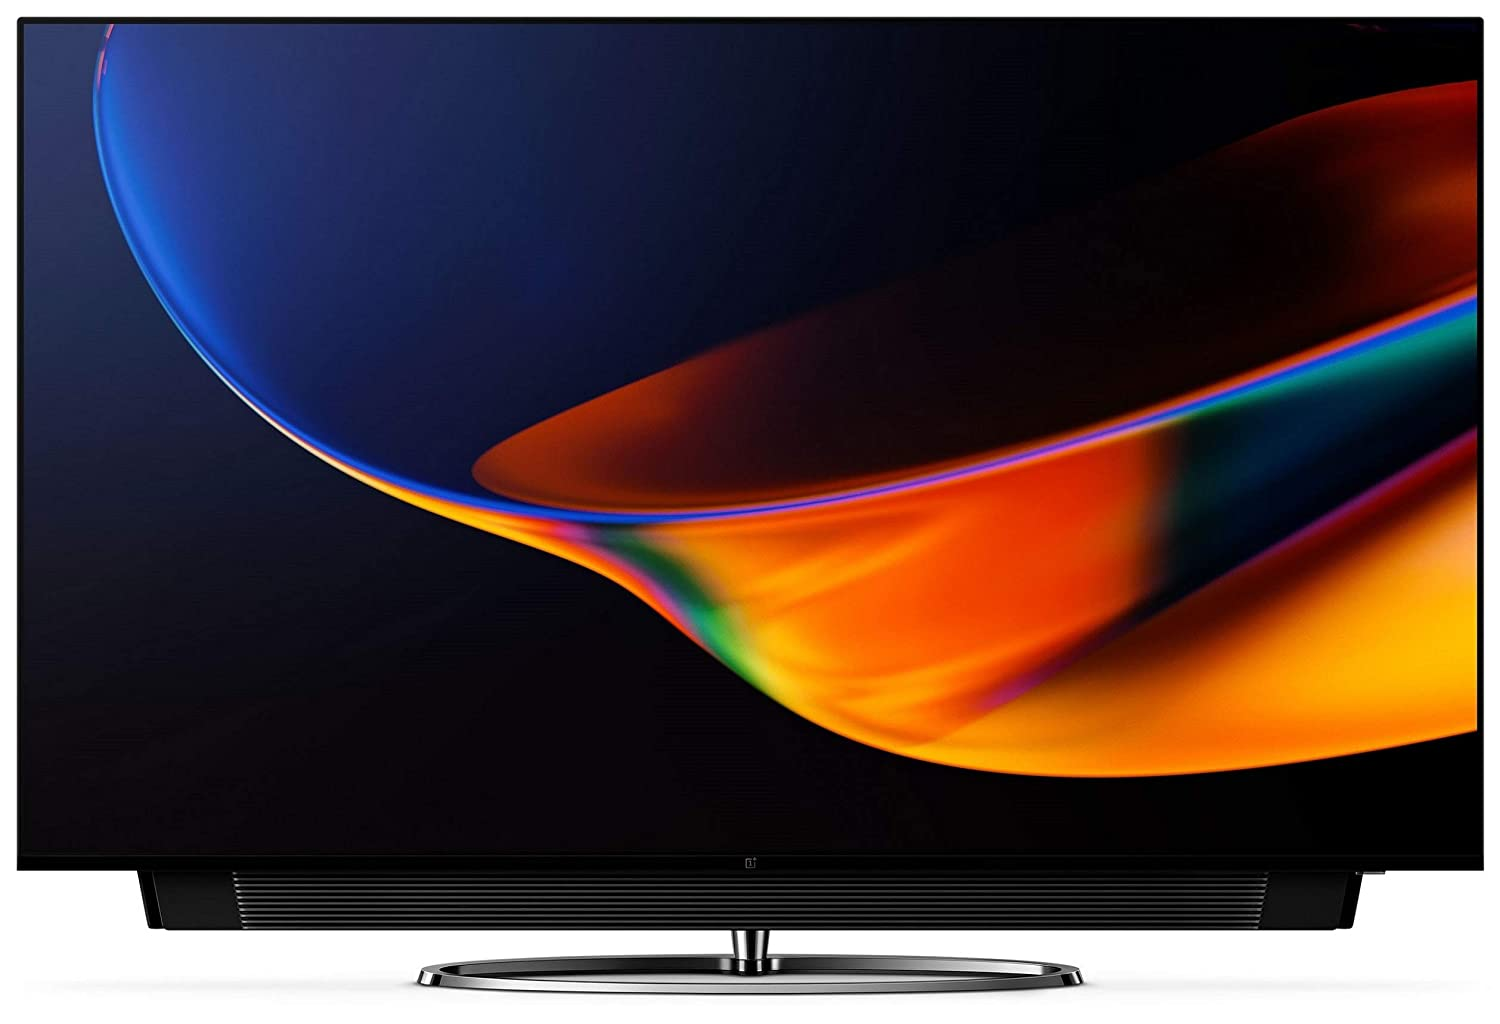 OnePlus 55 Inches TV